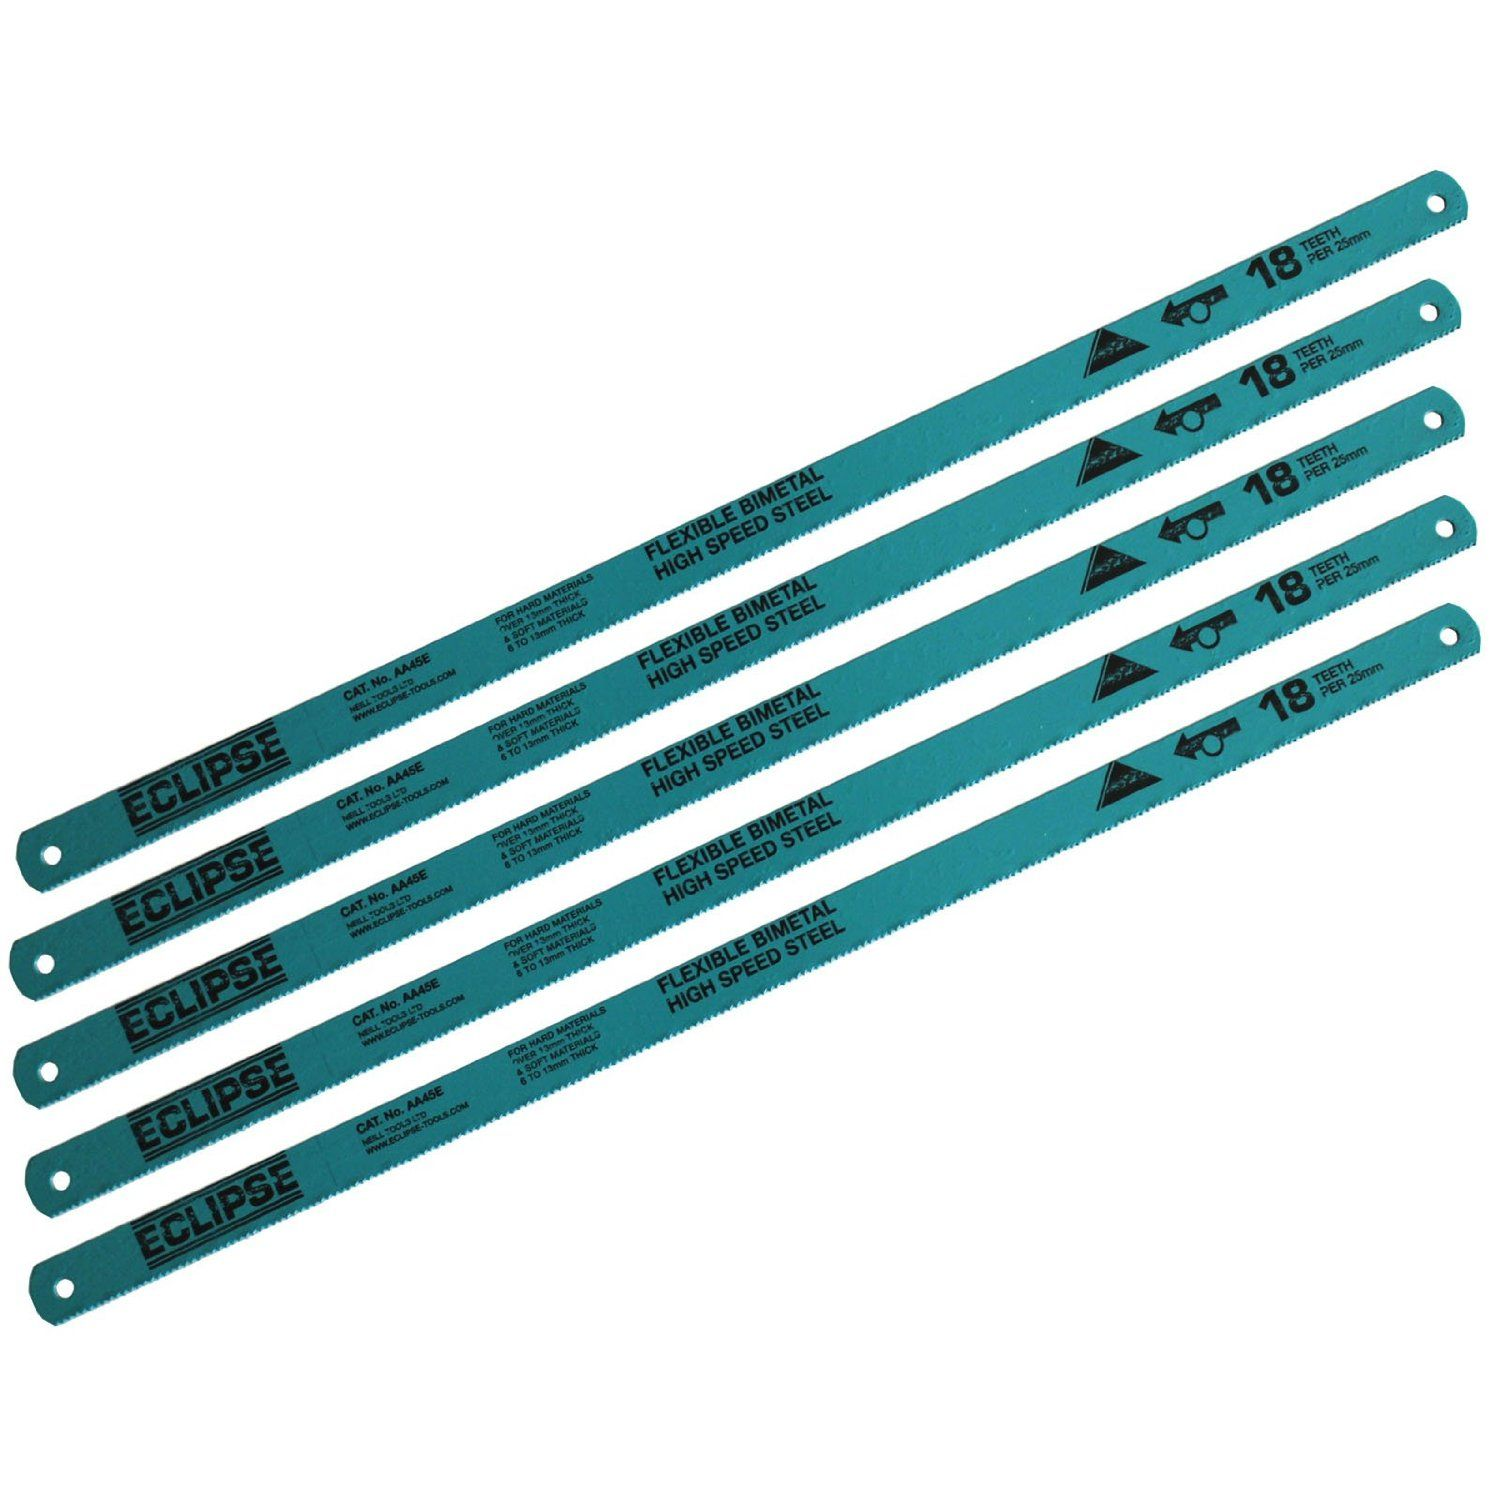 Eclipse Bi-Metal Flexible High Speed Steel Hacksaw Blades ...